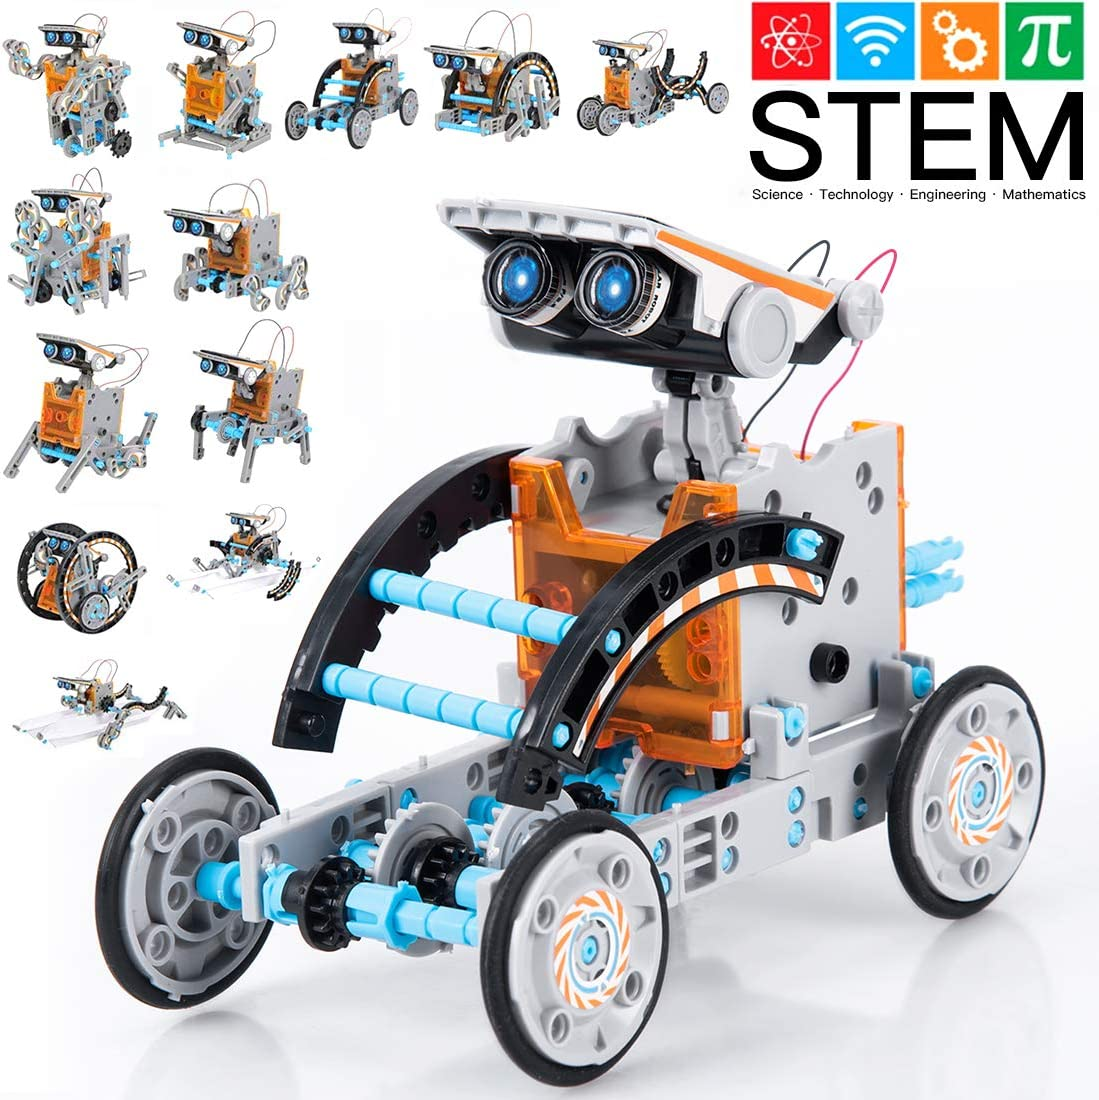 GARUNK STEM Solar Robot Kit 12 in 1 Educational STEM Learning Science Building Toys for Kids Teens and Science Lovers Age 10 11 12+ Years Old Boys and Girls